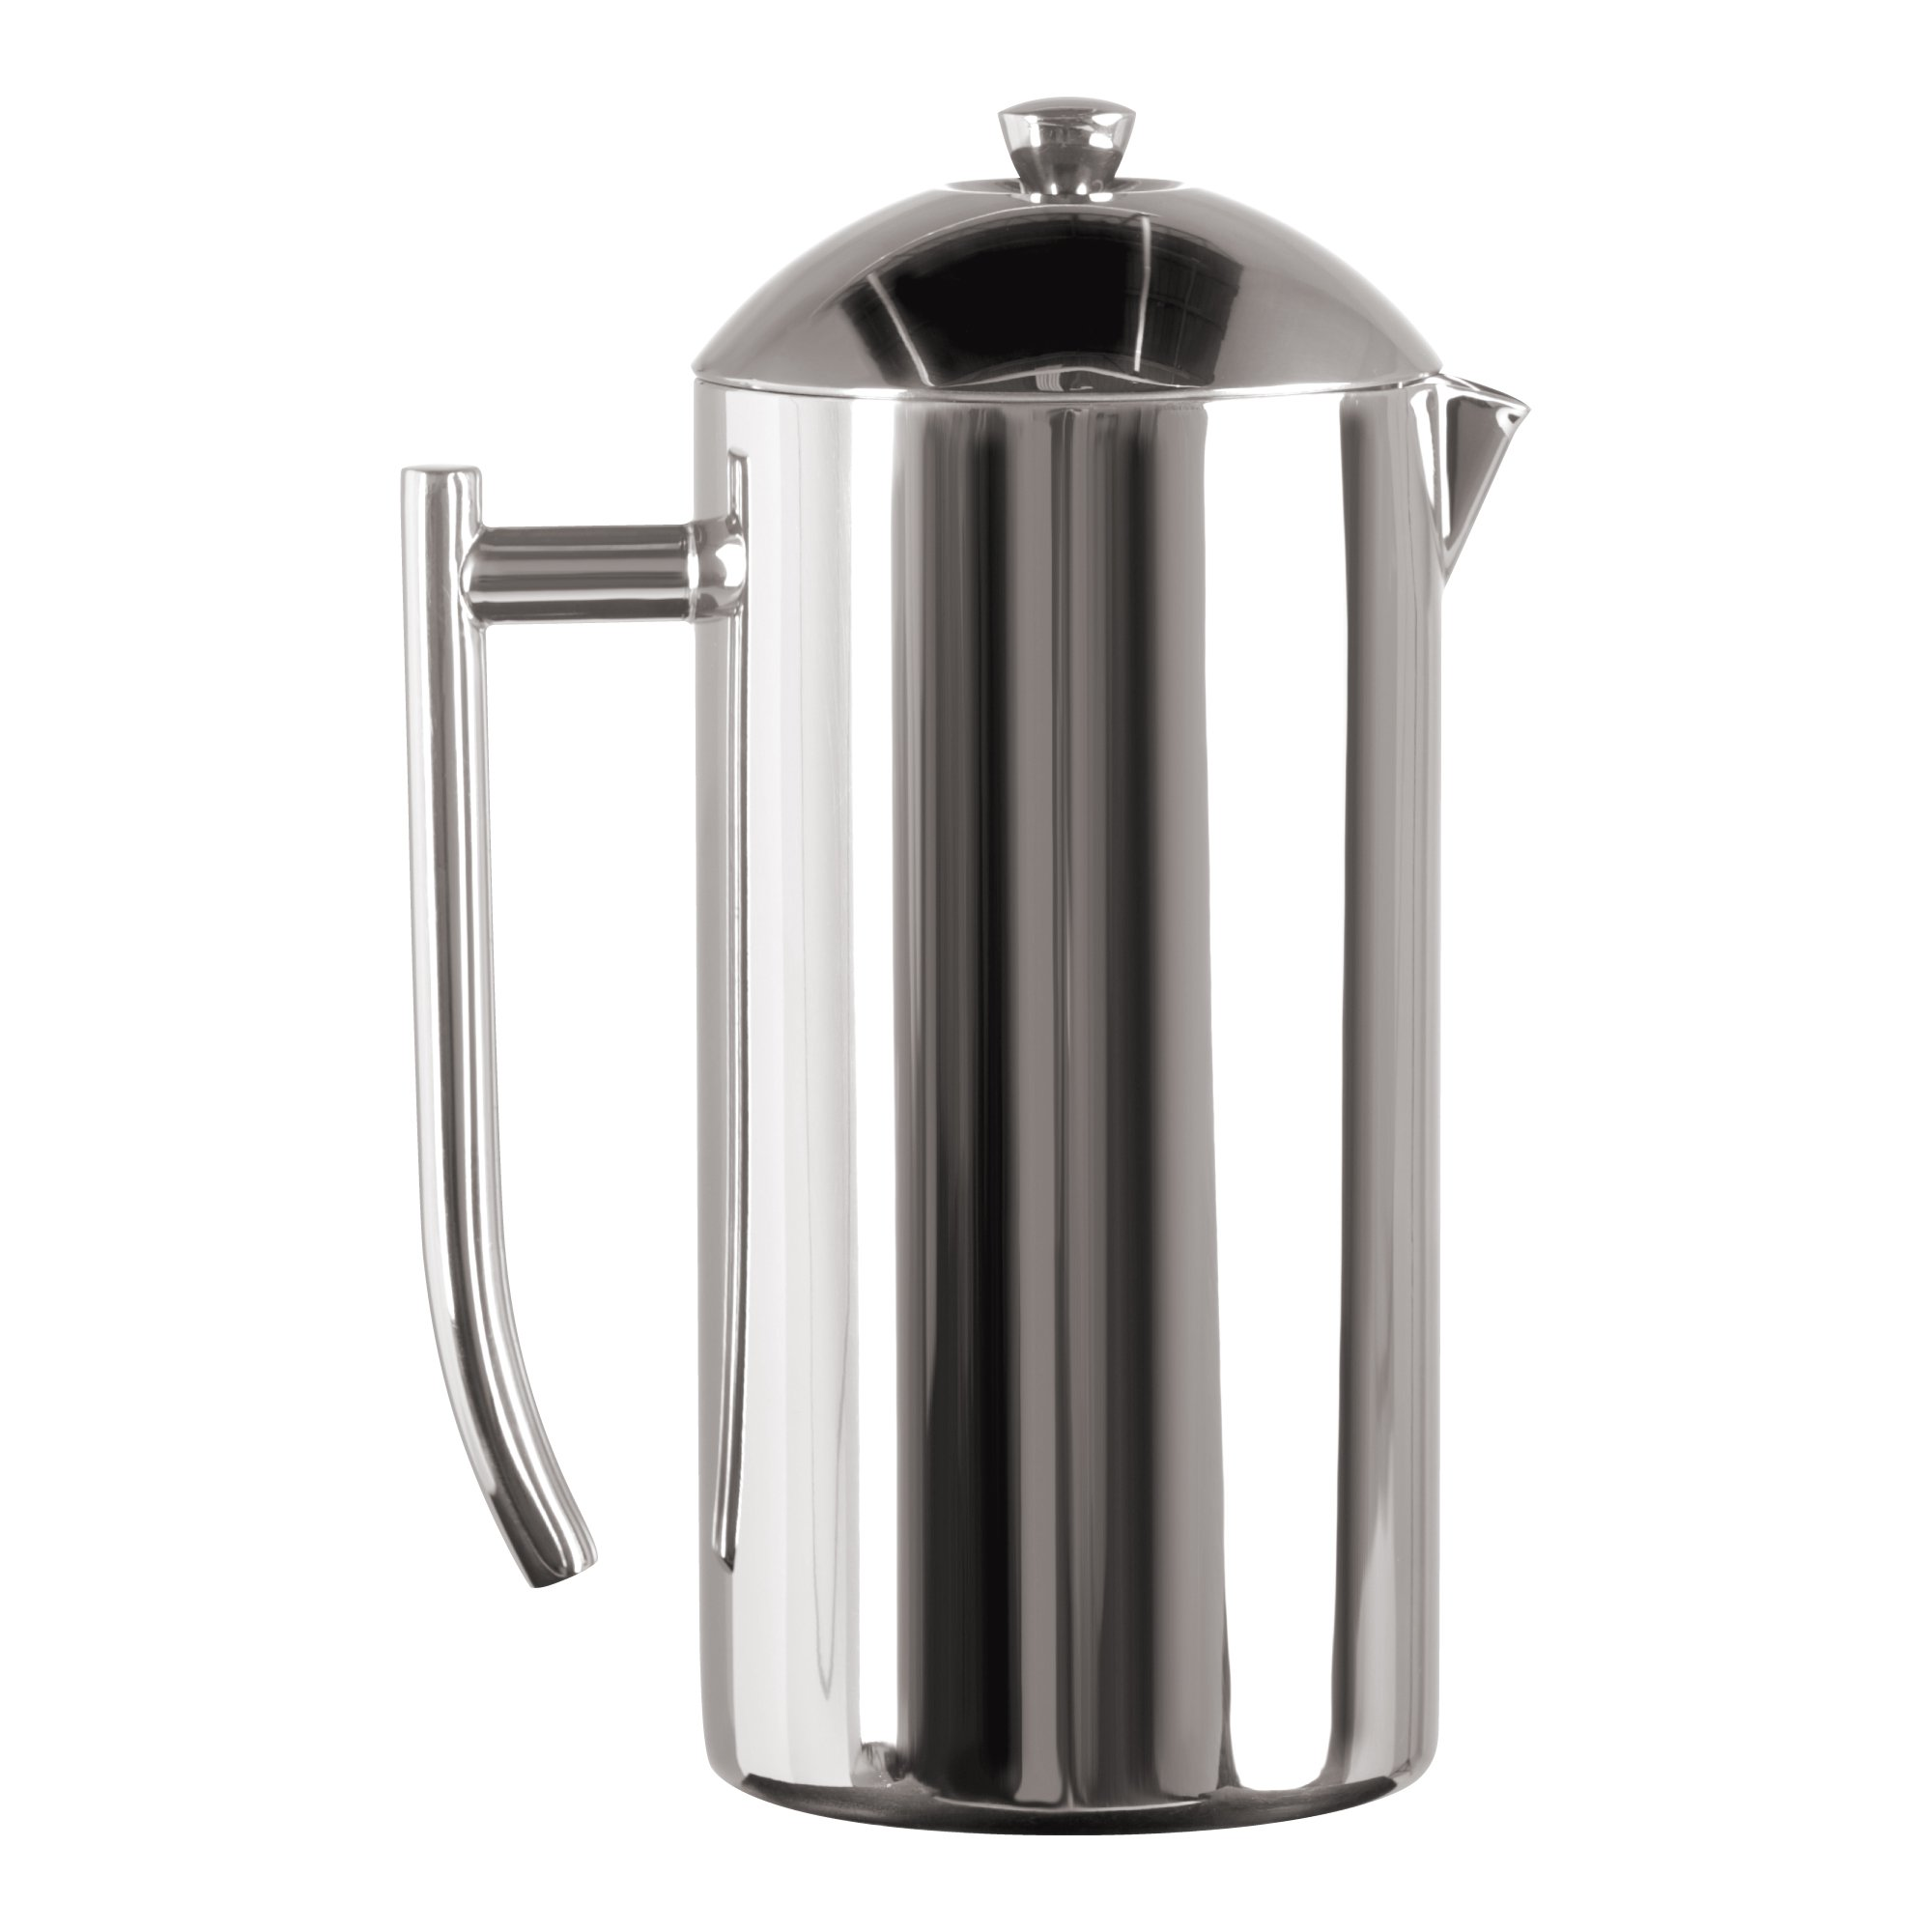 Frieling USA Double Wall Stainless Steel French Press Coffee Maker with Patented Dual Screen in Frustration Free Packaging, Polished, 44-Ounce